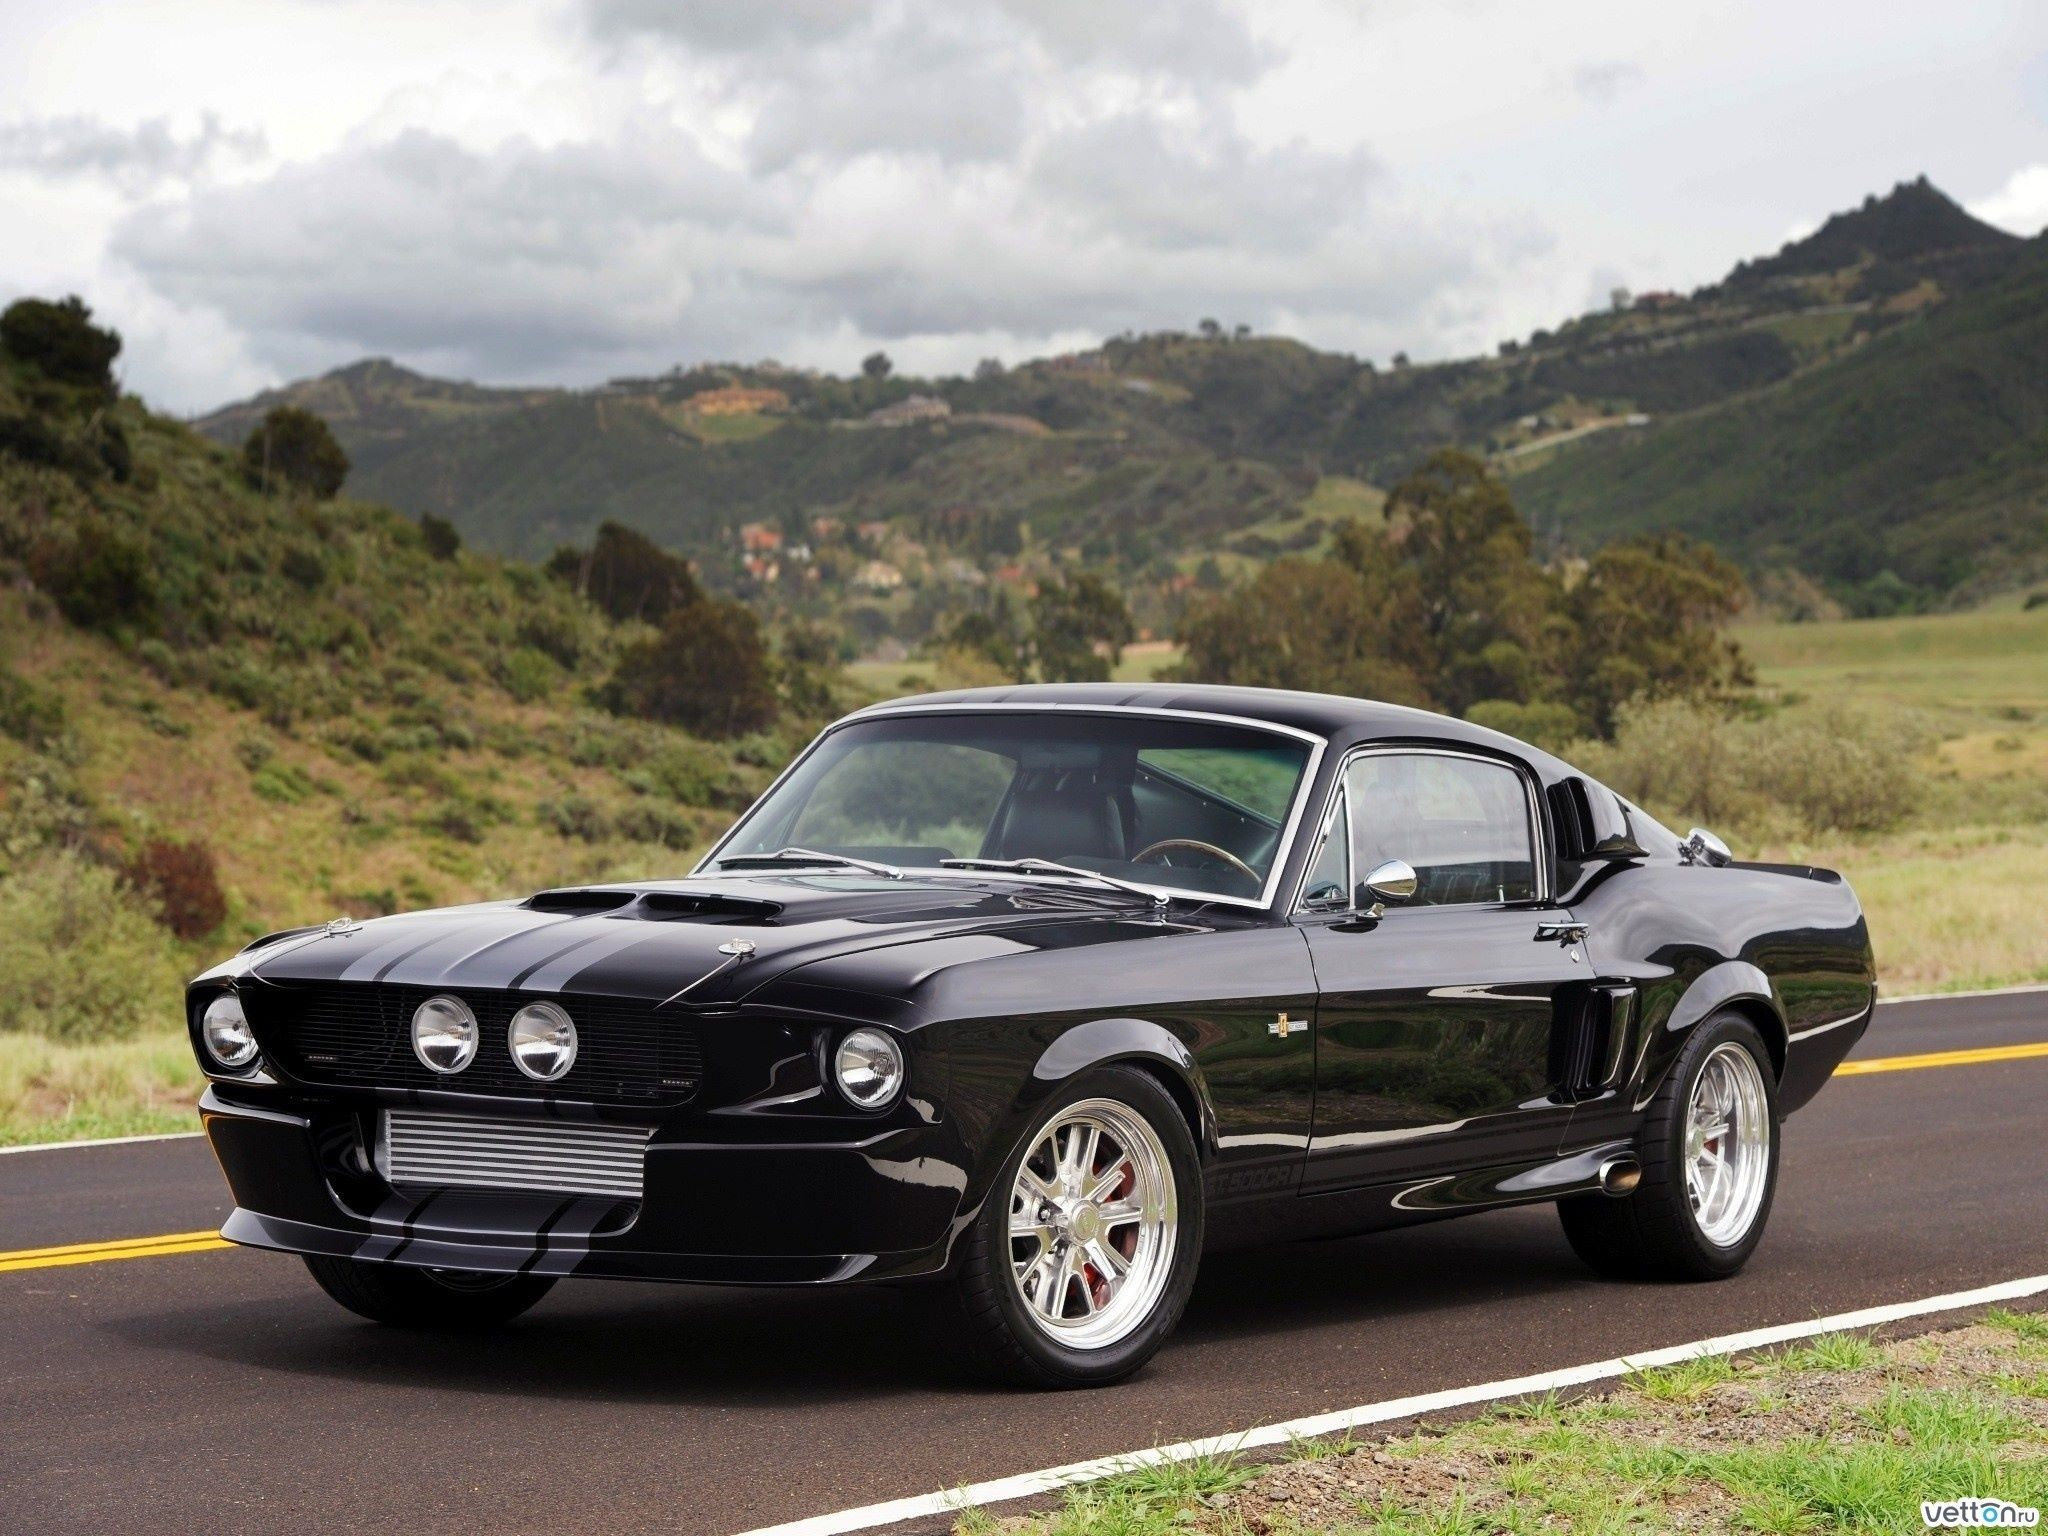 Ford Mustang Shelby Gt500 Fastback Eleanor 1967 68 Shelby